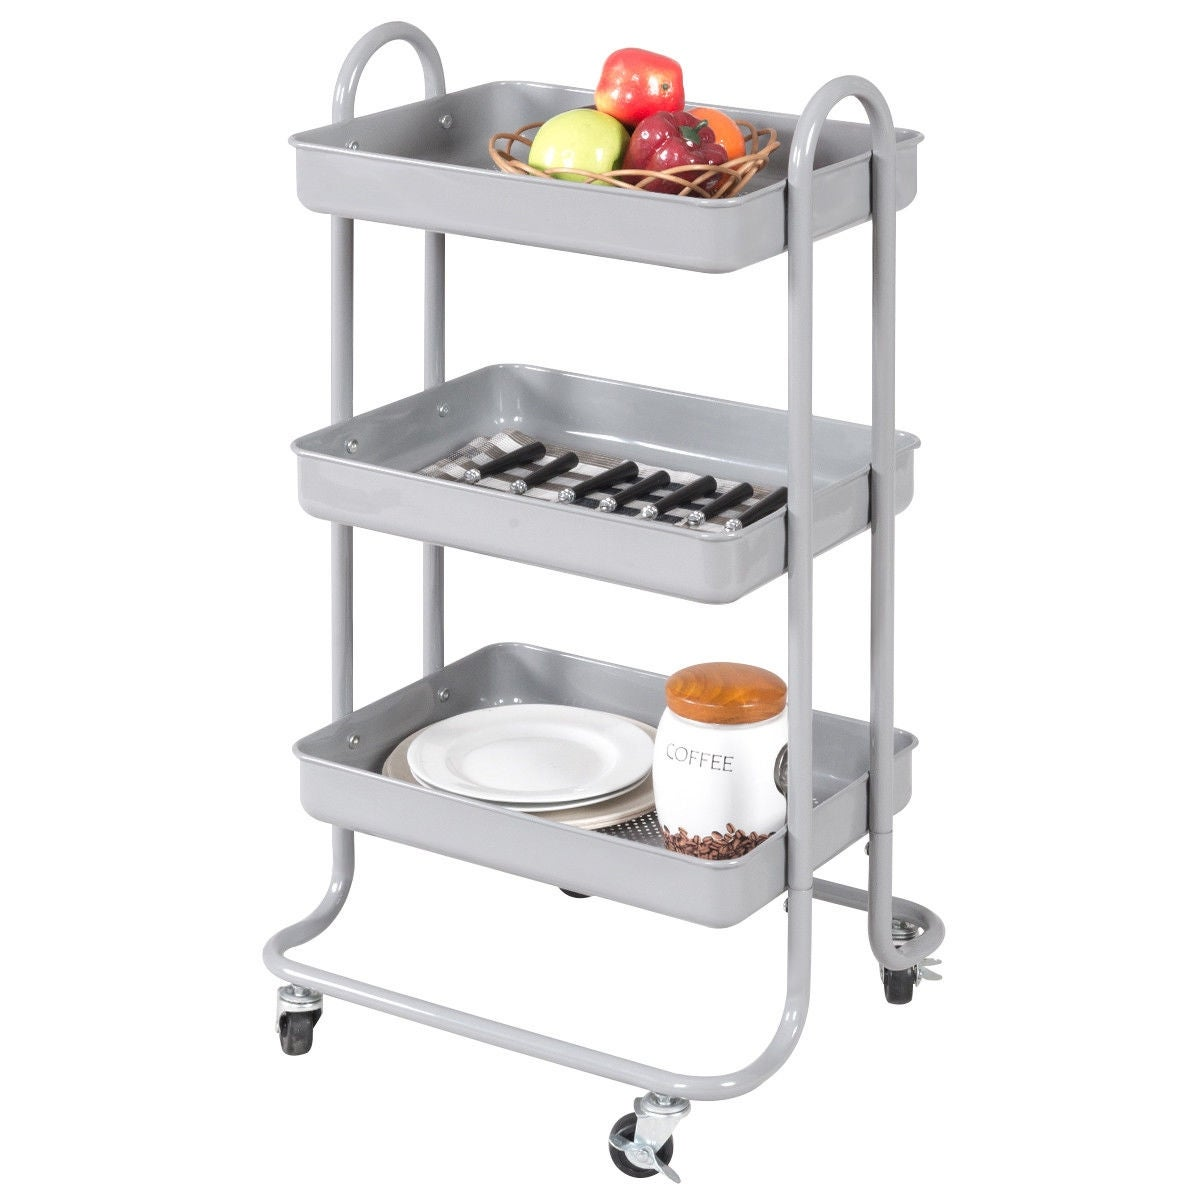 Shop costway 3 tier steel rolling kitchen trolley cart storage serving island utility gray free shipping today overstock com 18531914